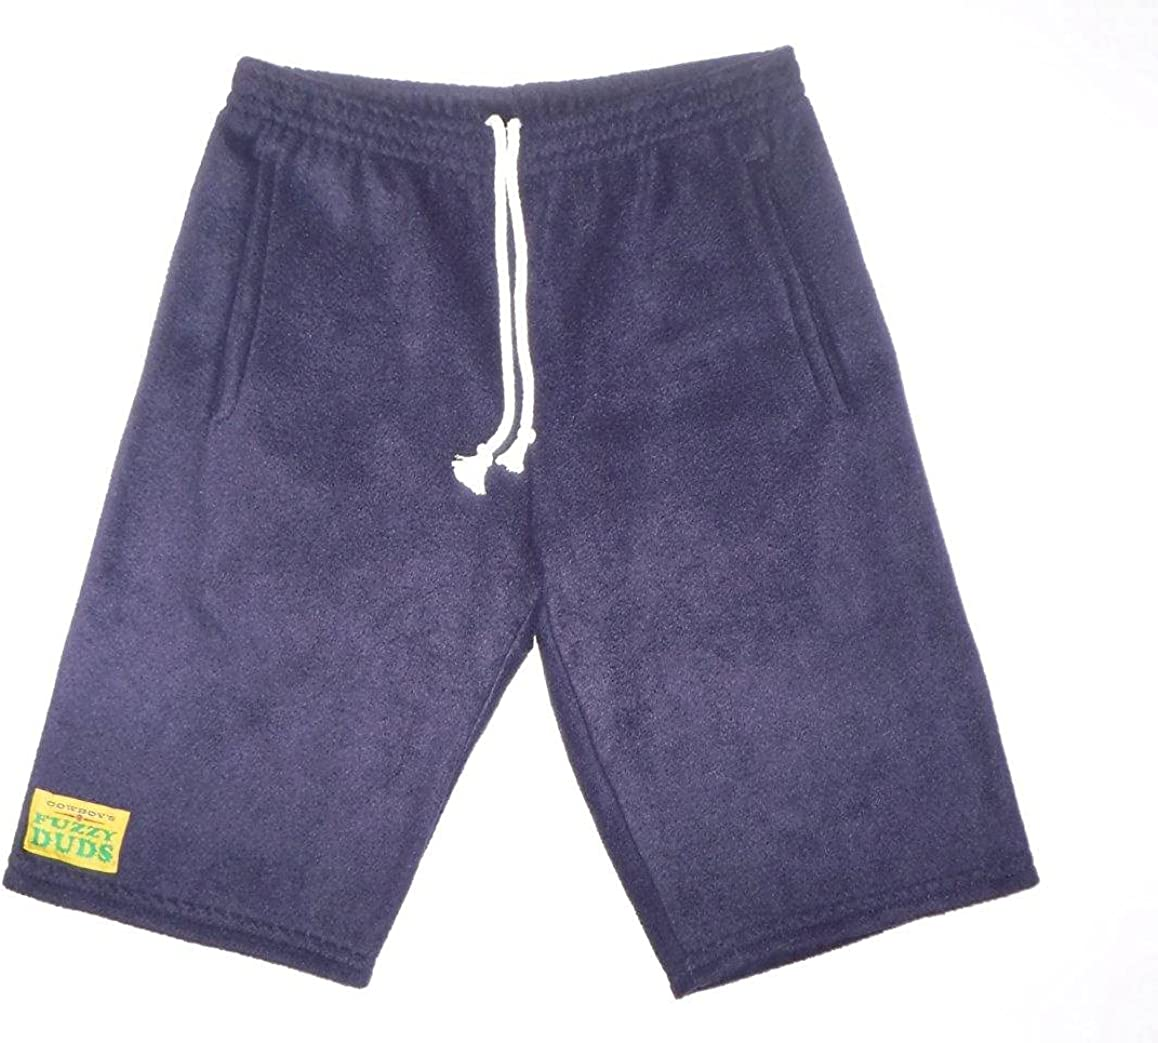 Cowboy's Fuzzy Duds Youth - Navy